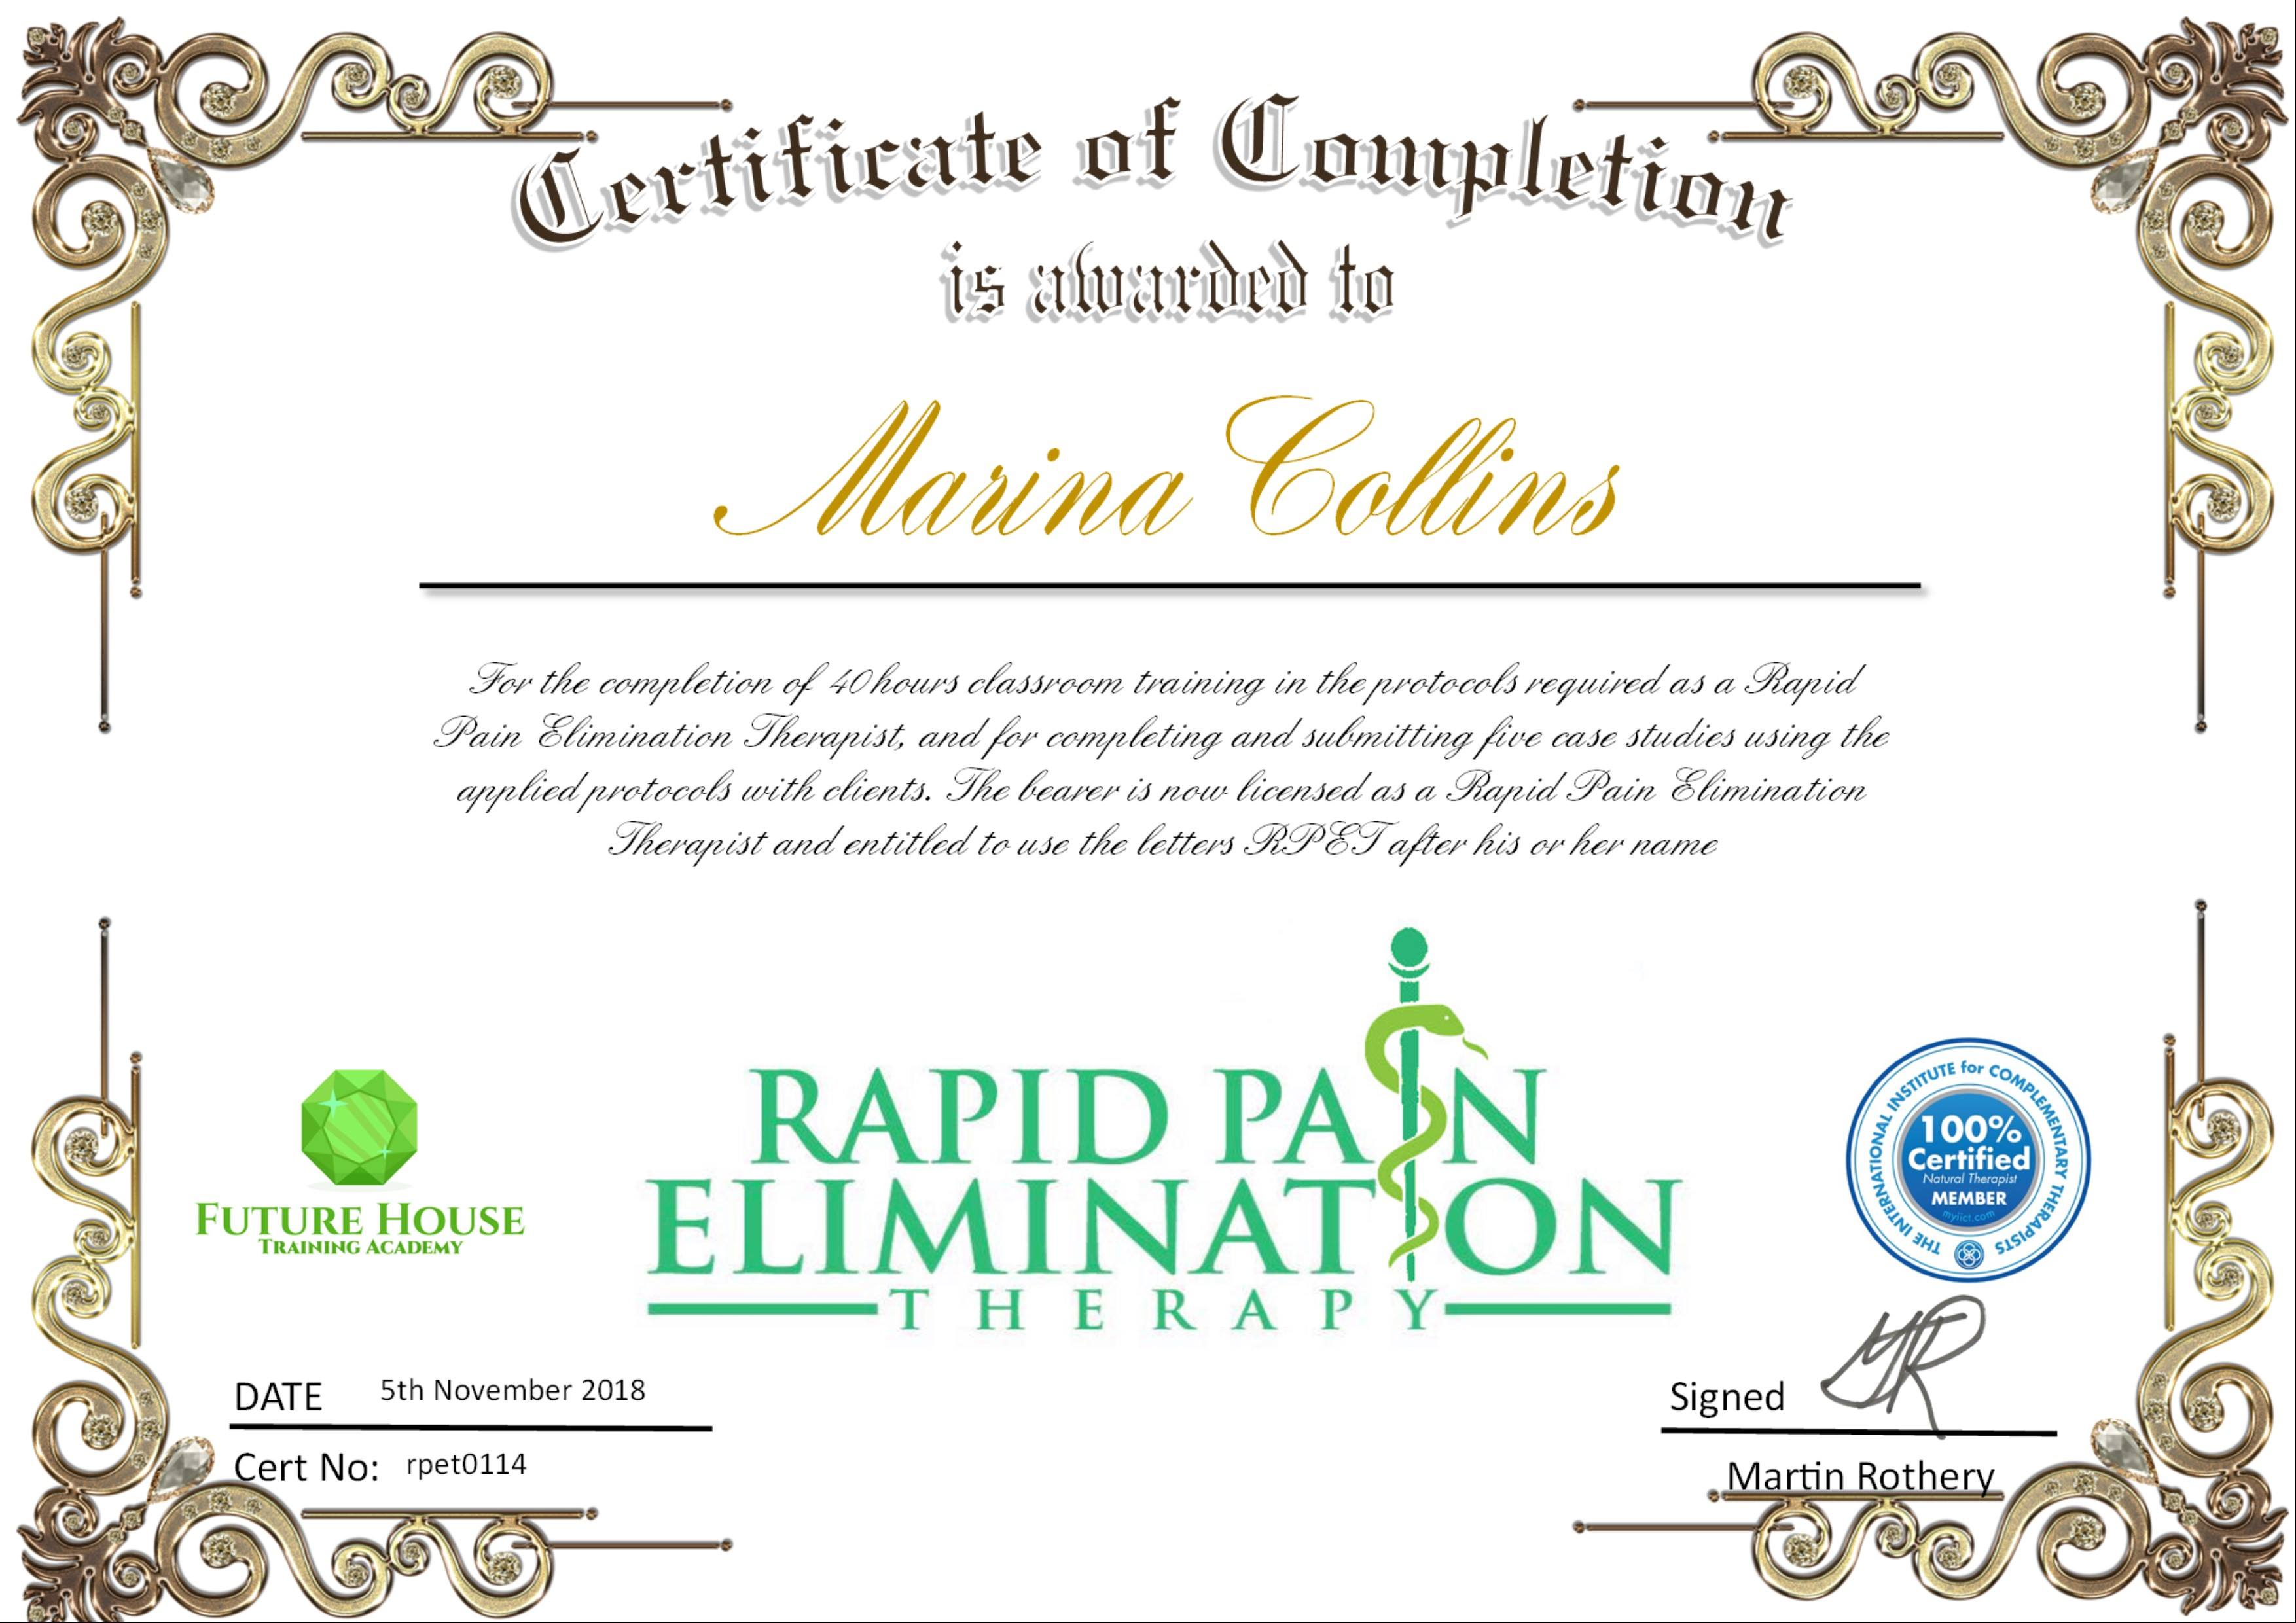 Certification for Rapid Pain Elimination